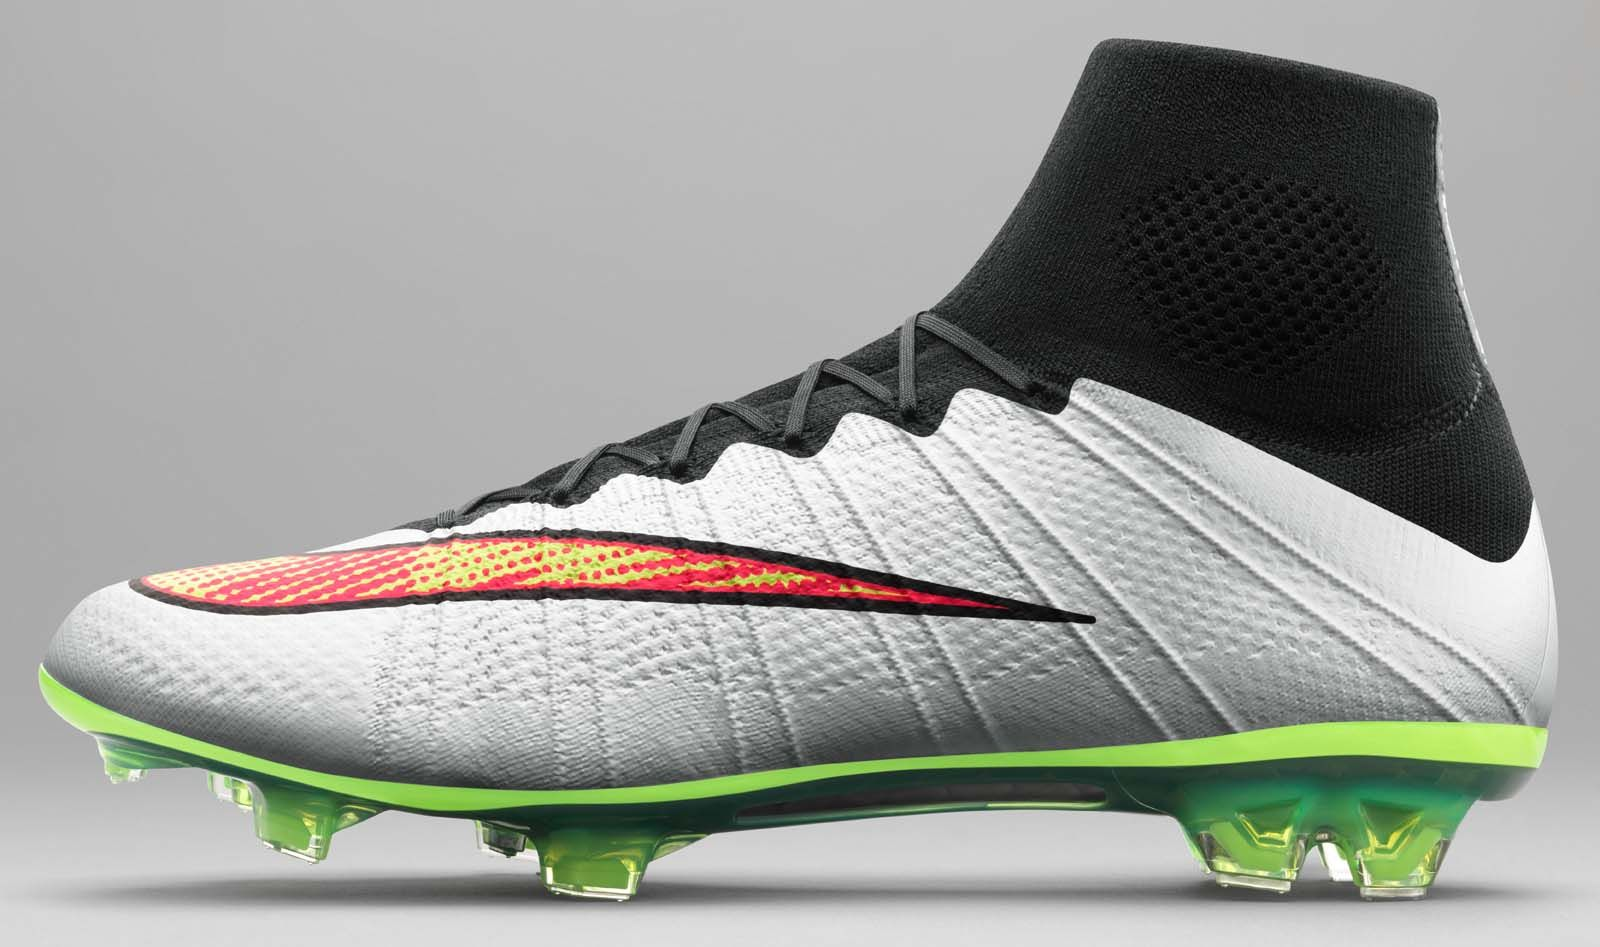 Nike-2015-White-Football-Boots-Superfly.jpg (1600×947) | Sports | Pinterest  | Soccer gear